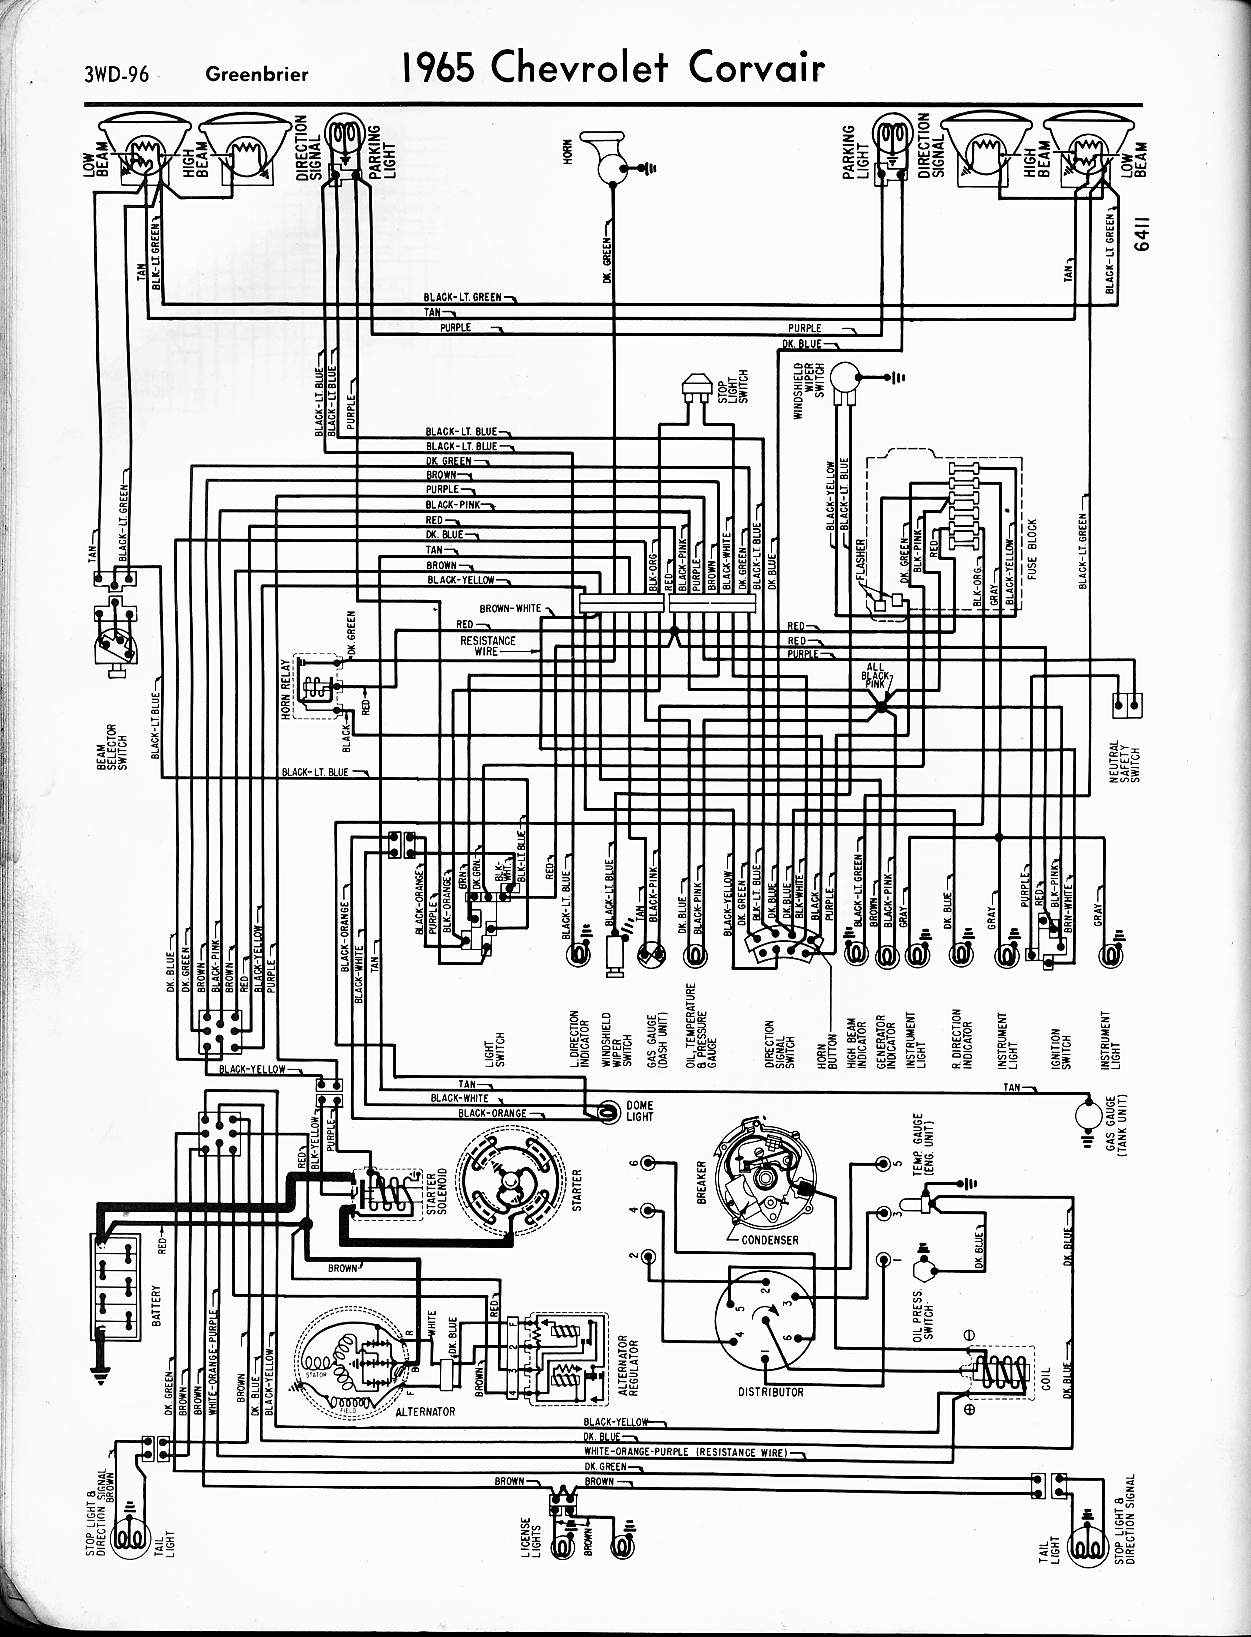 Corvair Wiring Harness Diagram Get Free Image About Wiring